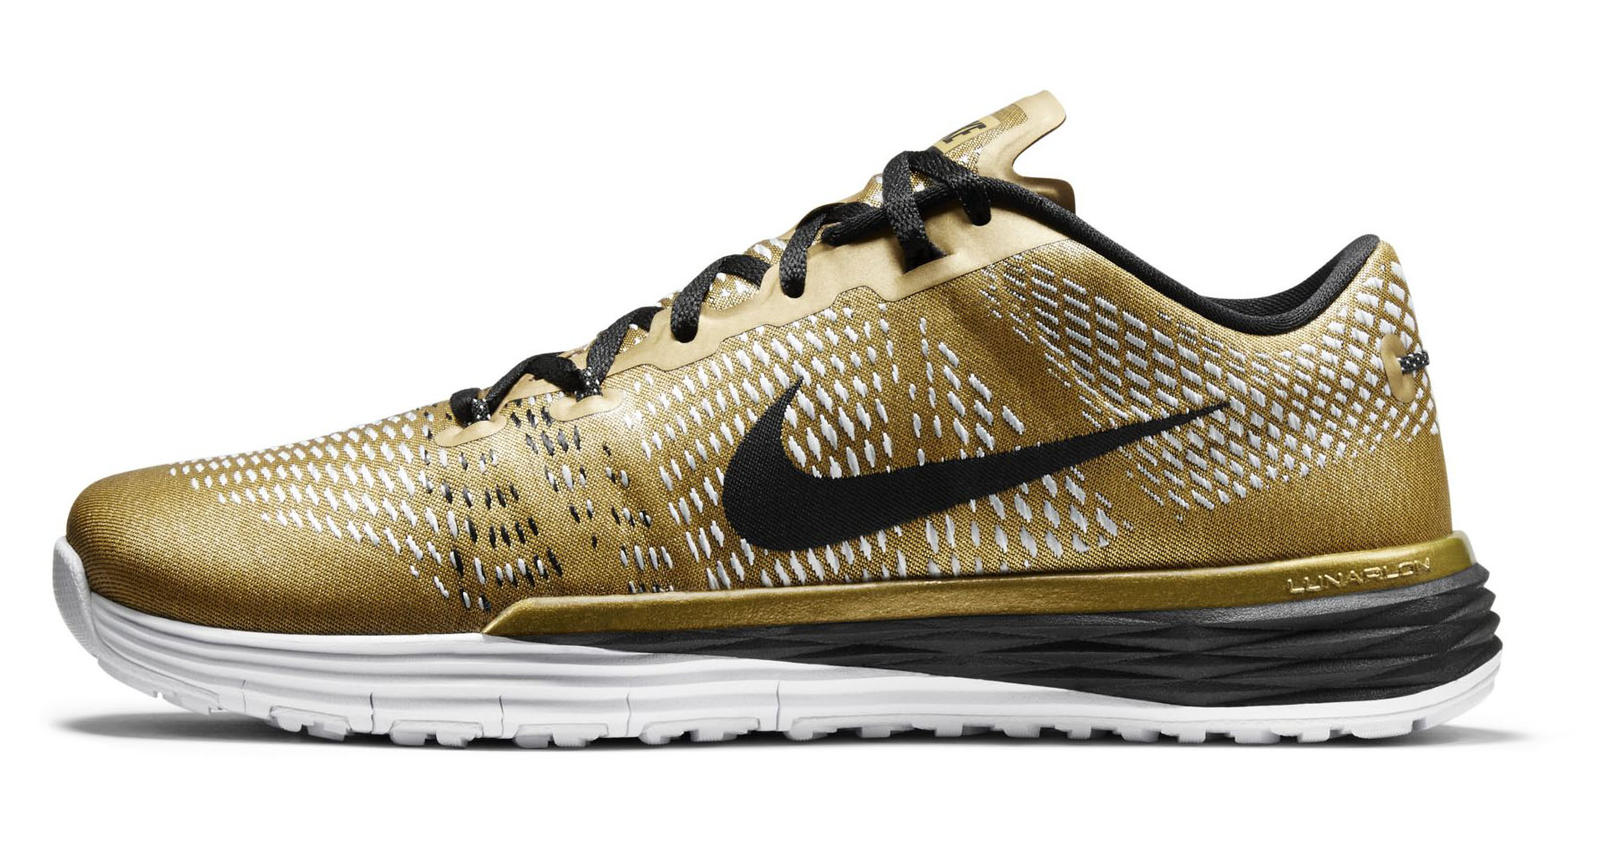 Nike Limited Edition Tennis Shoes